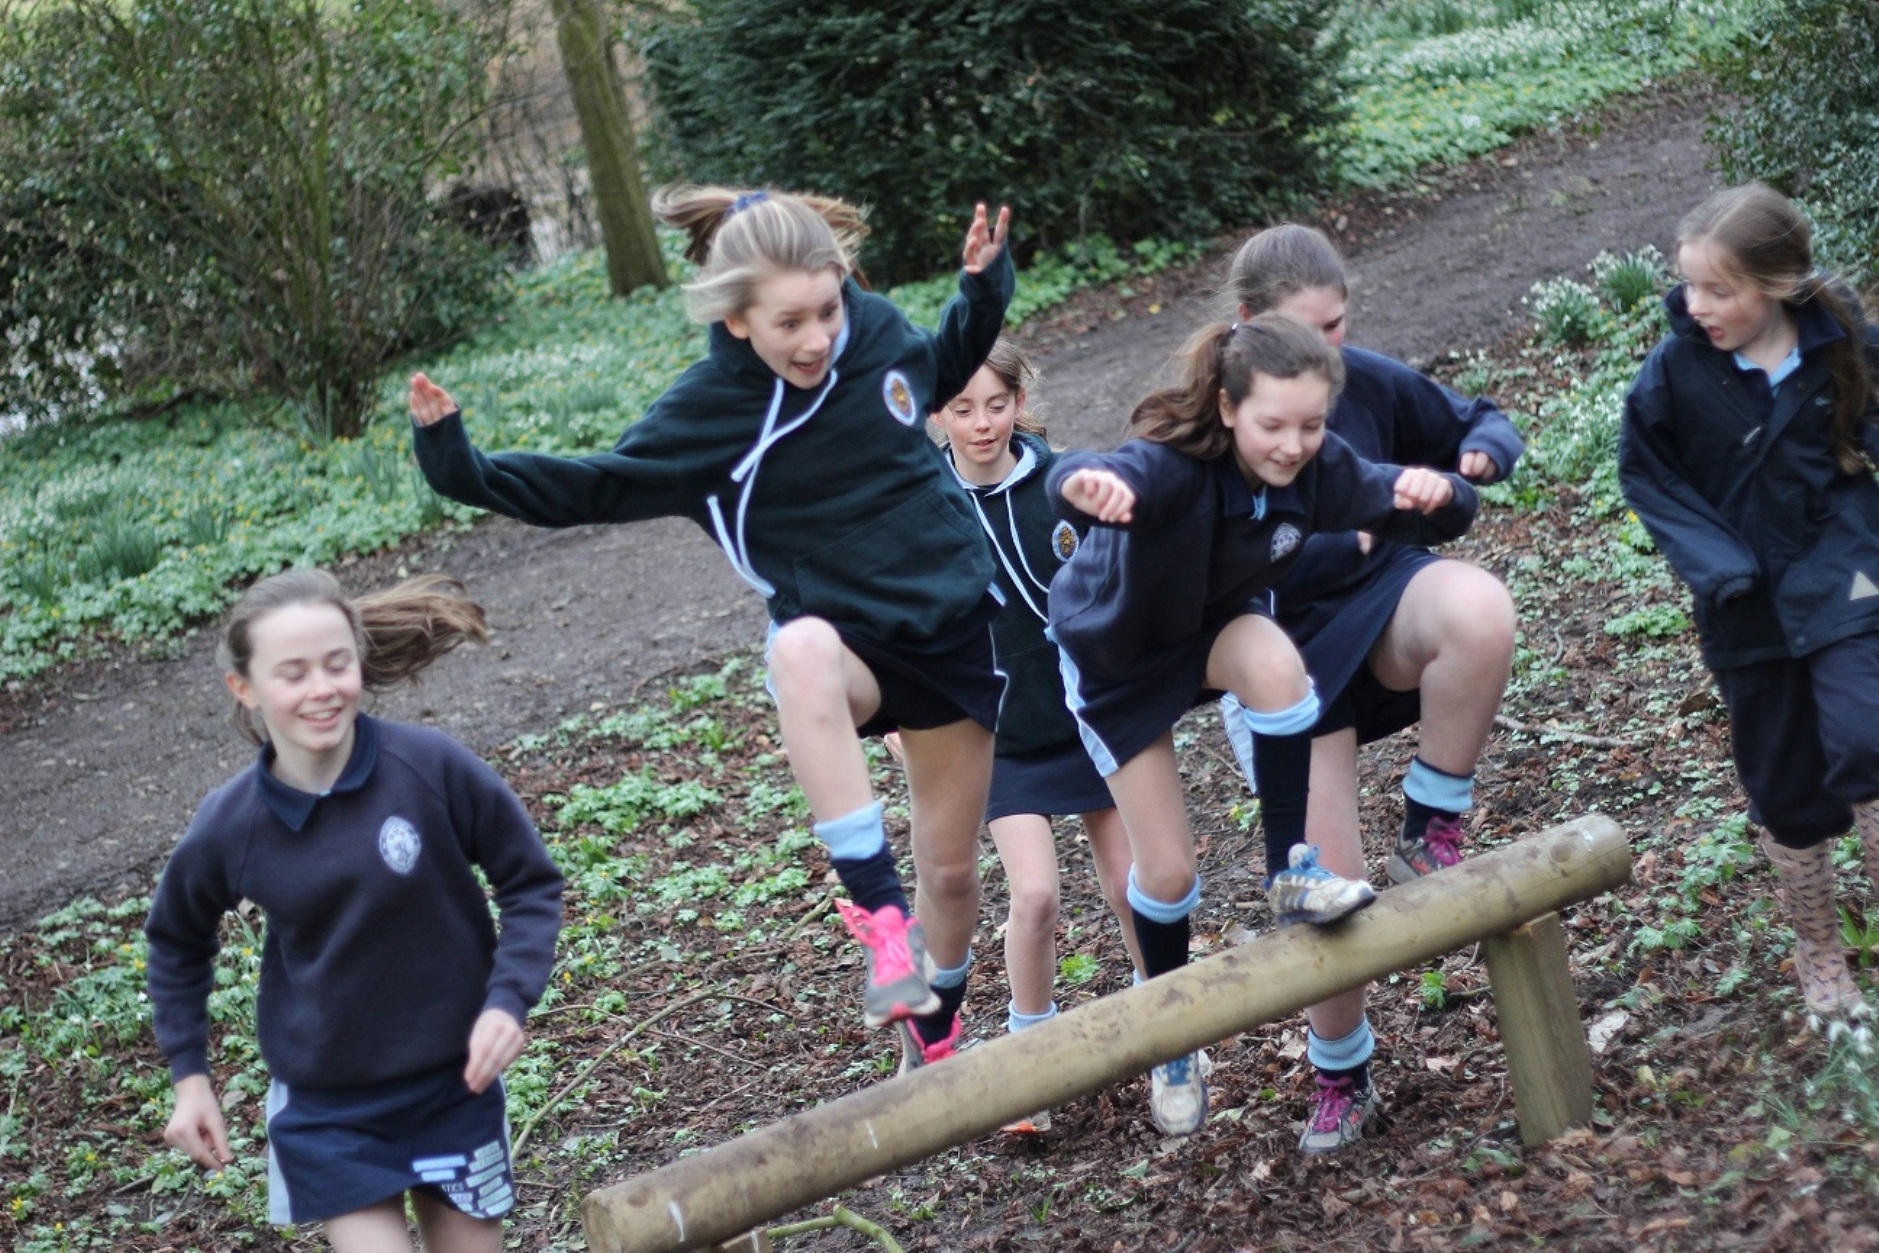 Pupils at Queen Mary's School test out the Wolf run assault course.